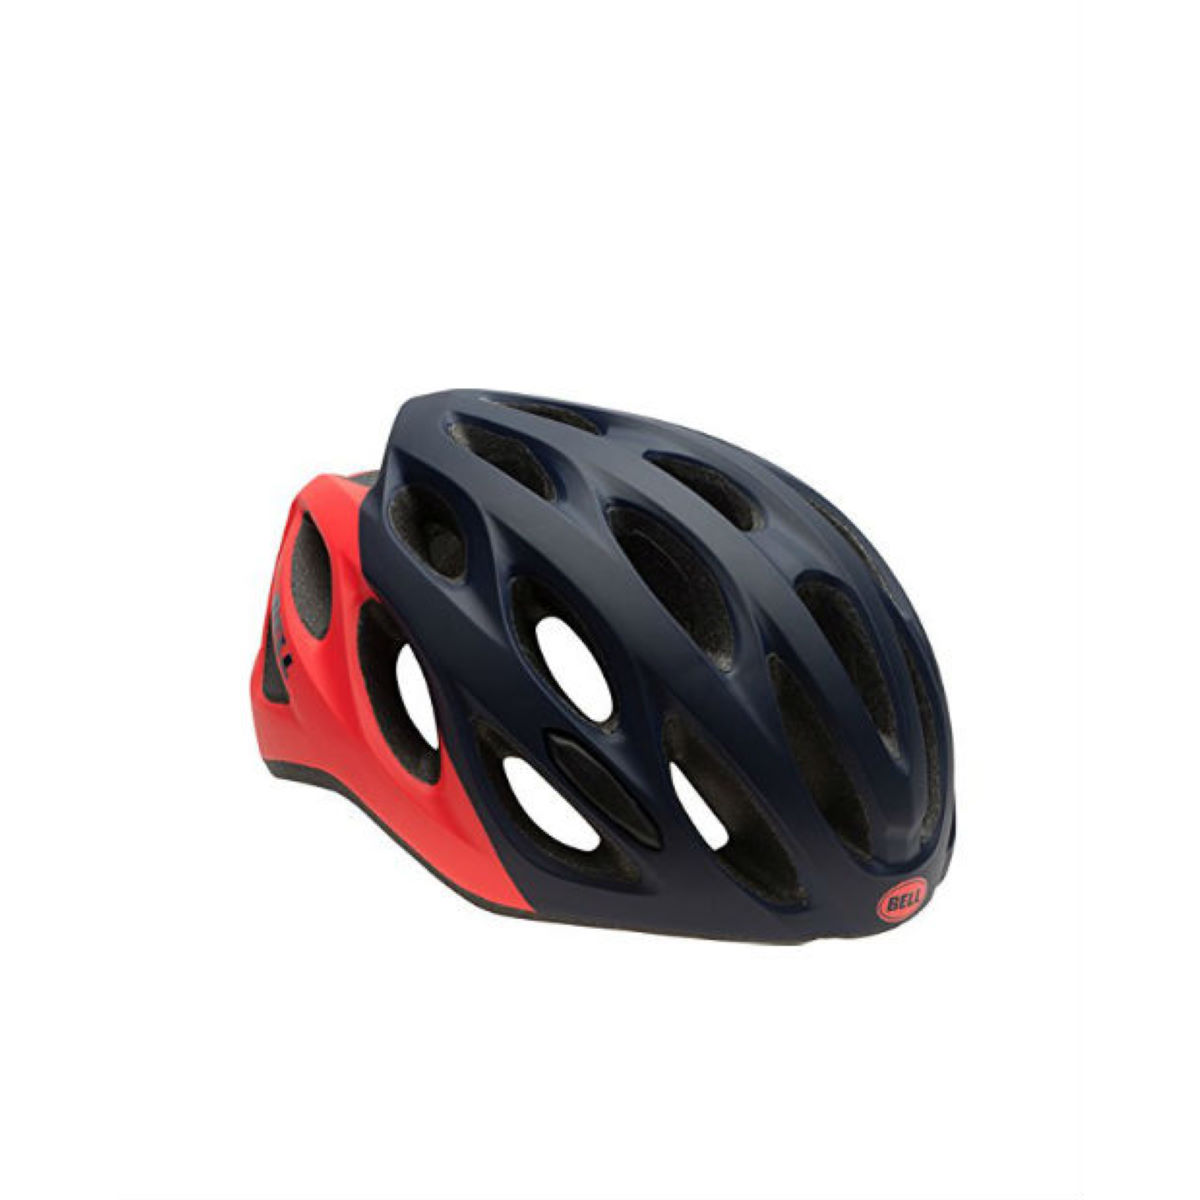 Casque Bell Tempo - One Size Midnight - Infrared Casques de route